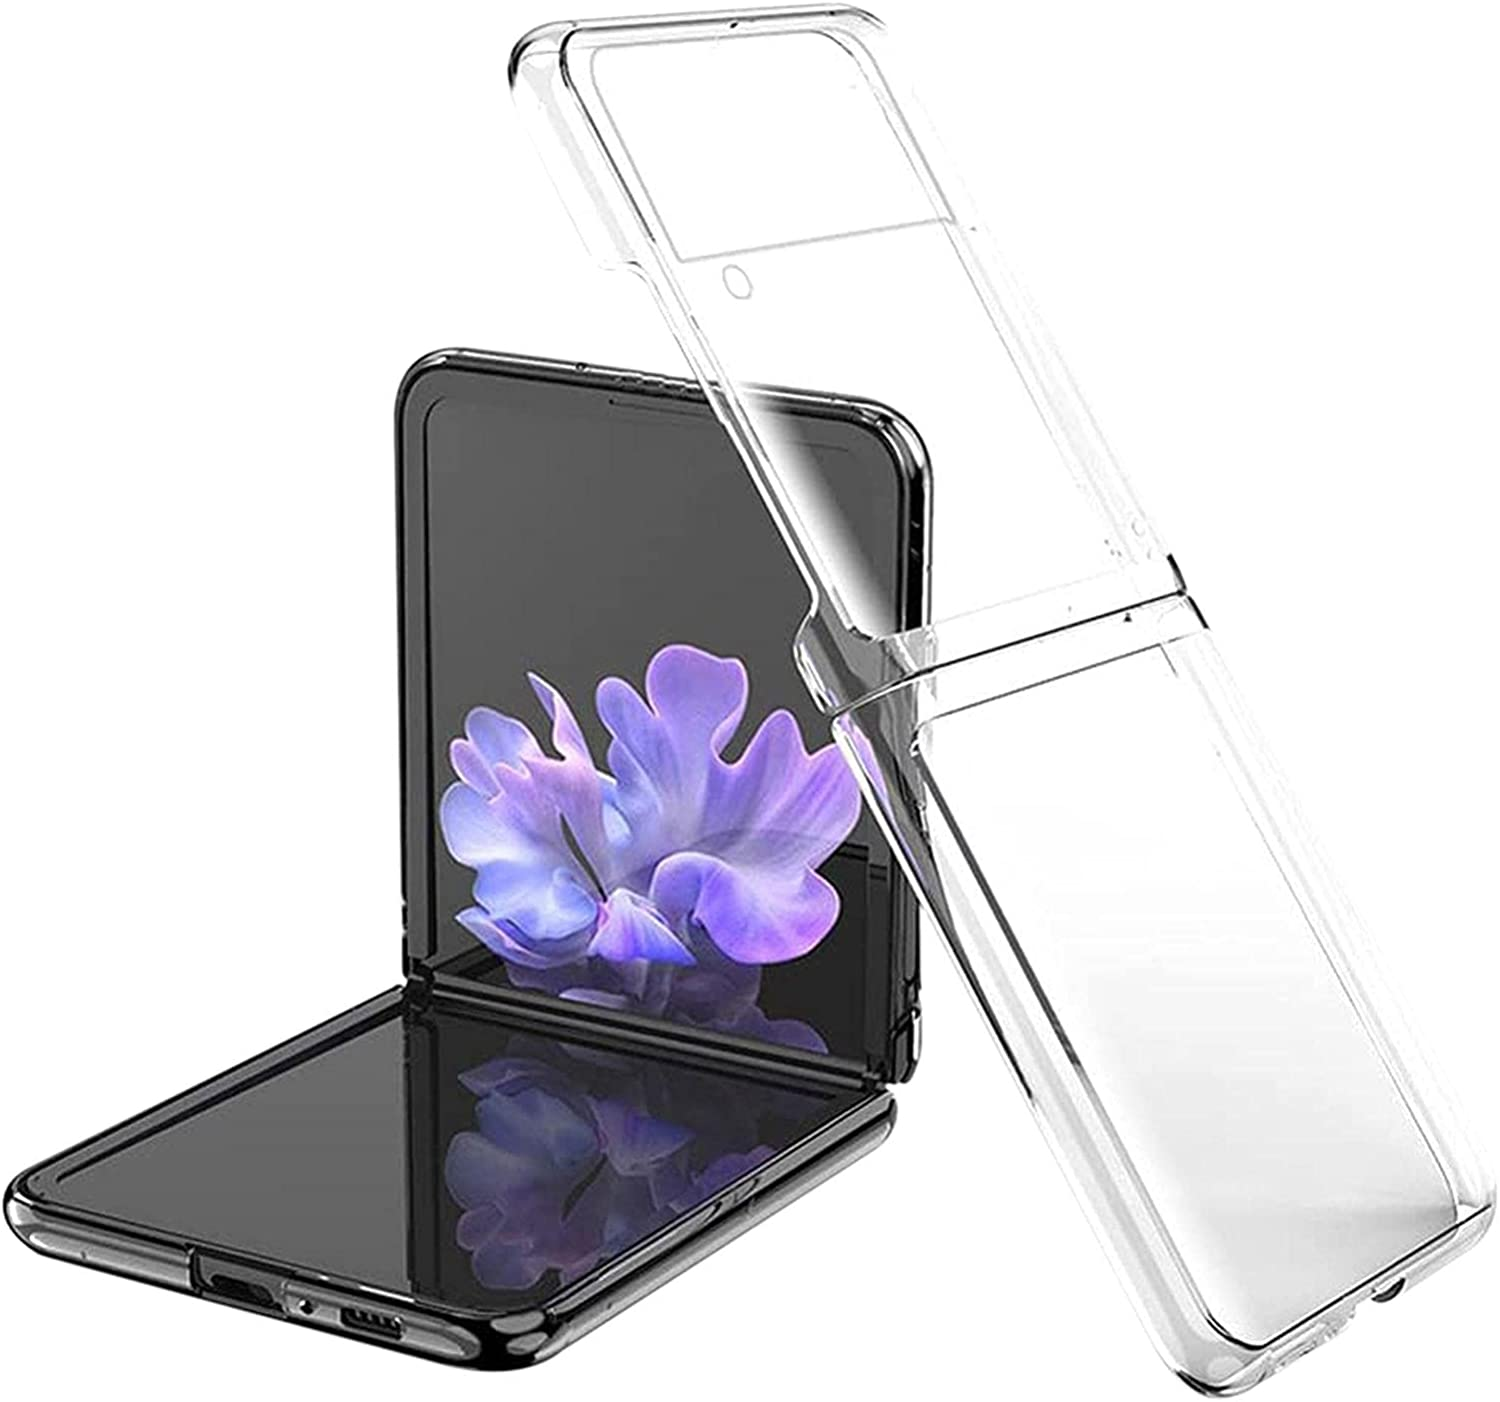 2021 Case for Samsung Galaxy Z Flip 3 5G Smartphone, Ultra Thin Folable PC Mobile Phone Protective Case for Samsung Galaxy Z Flip3 5G